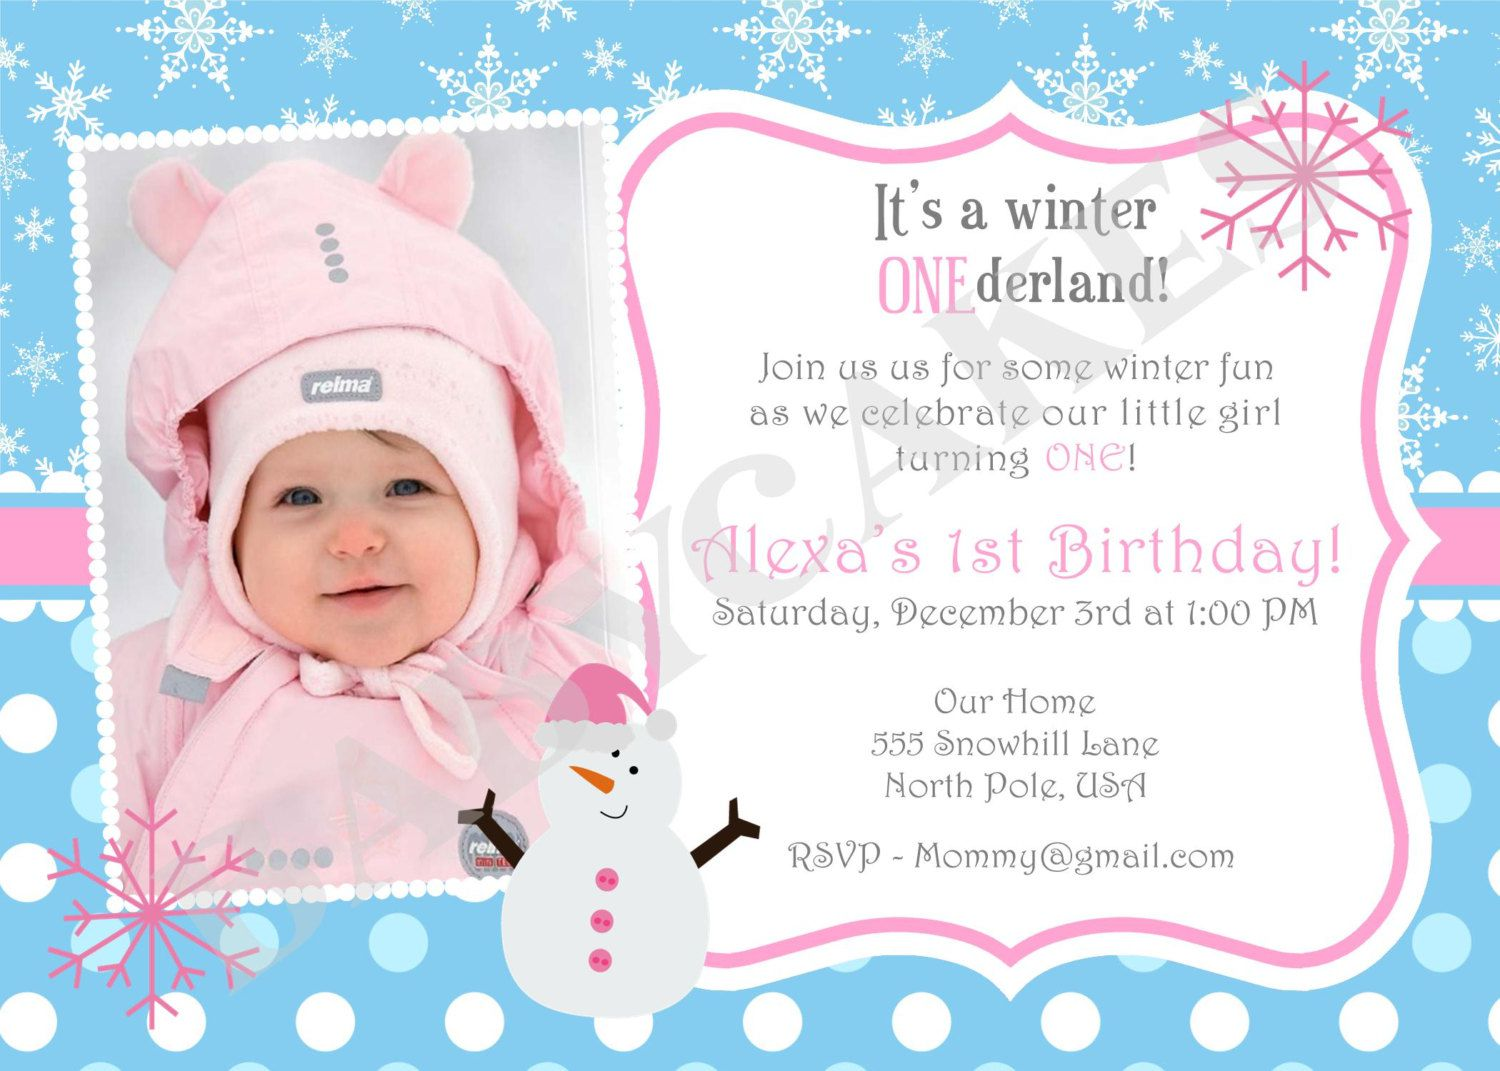 4 year old birthday invitation sayings ; birthday-invitation-wording-for-6-year-old